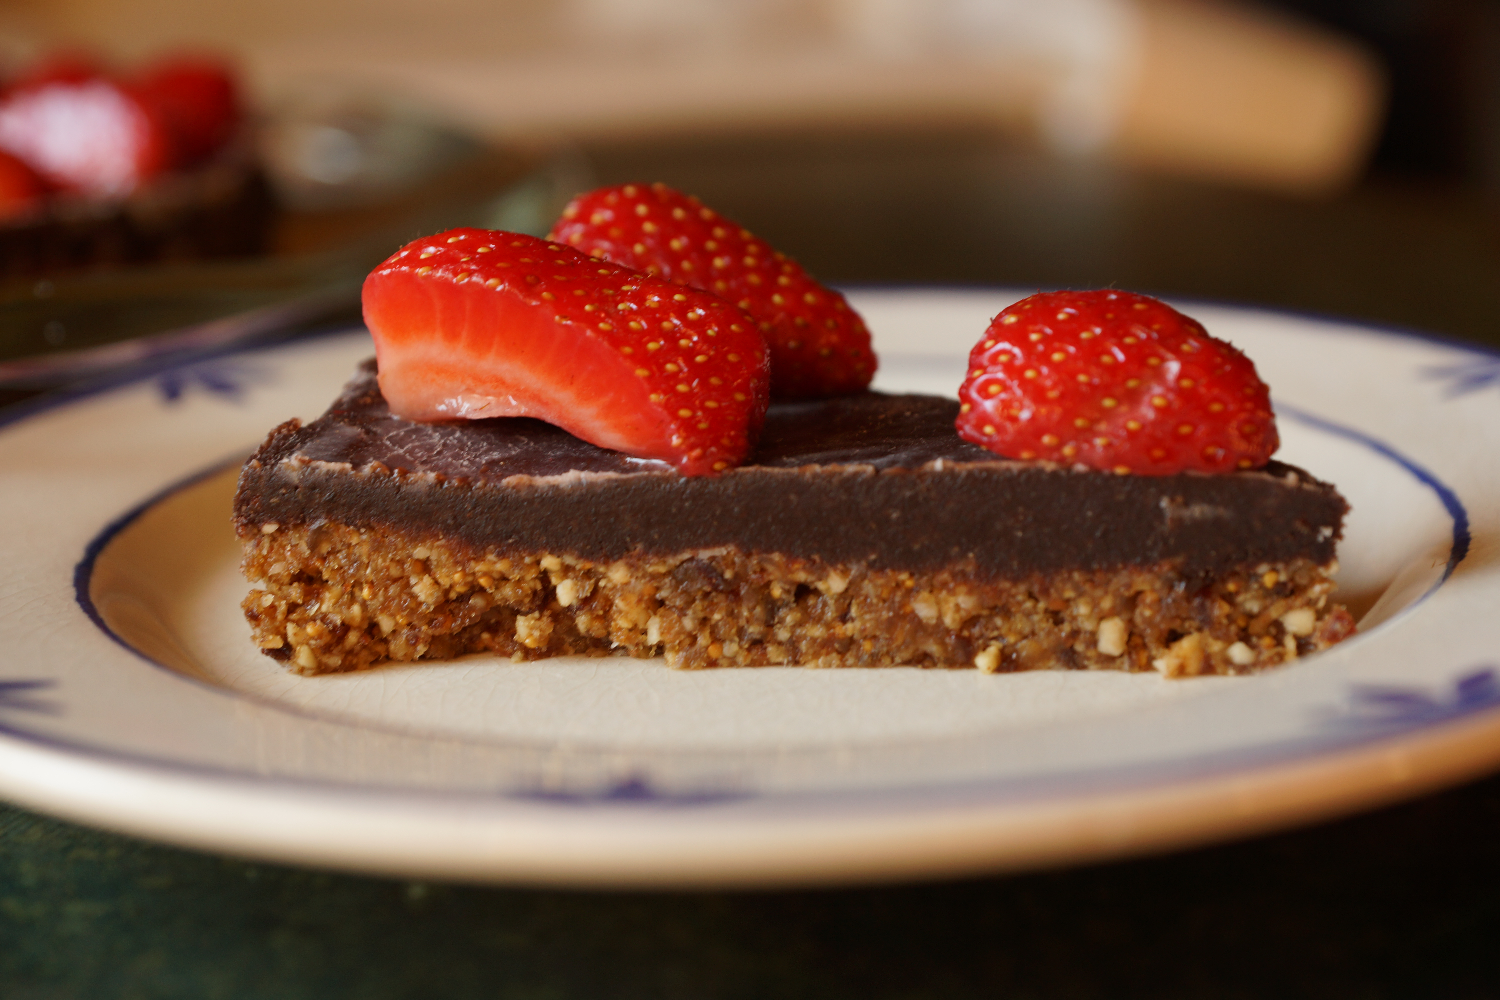 Raw Vegan Chocolate Cake | Raw Vegan Chocolate Tarte with Strawberries